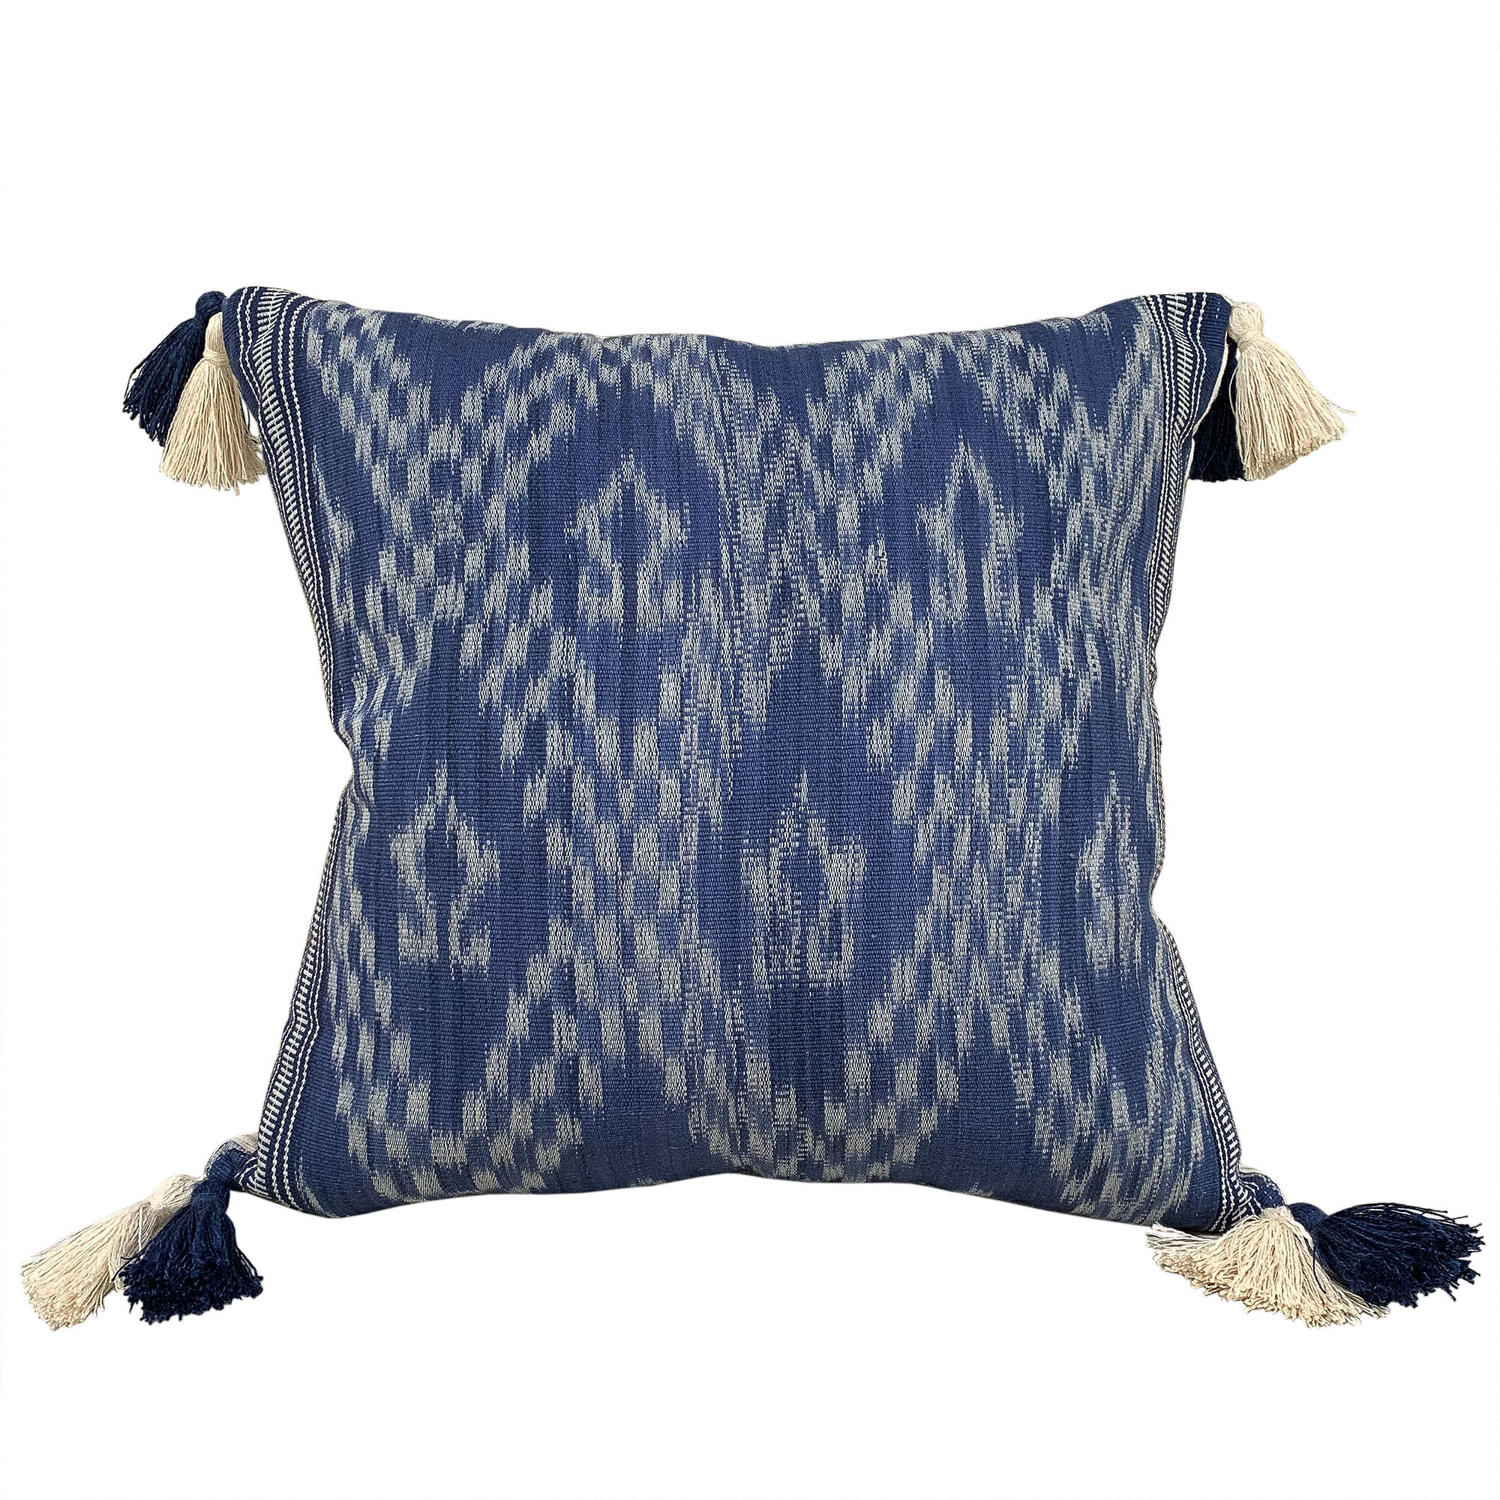 Ikat cushions with double tassels